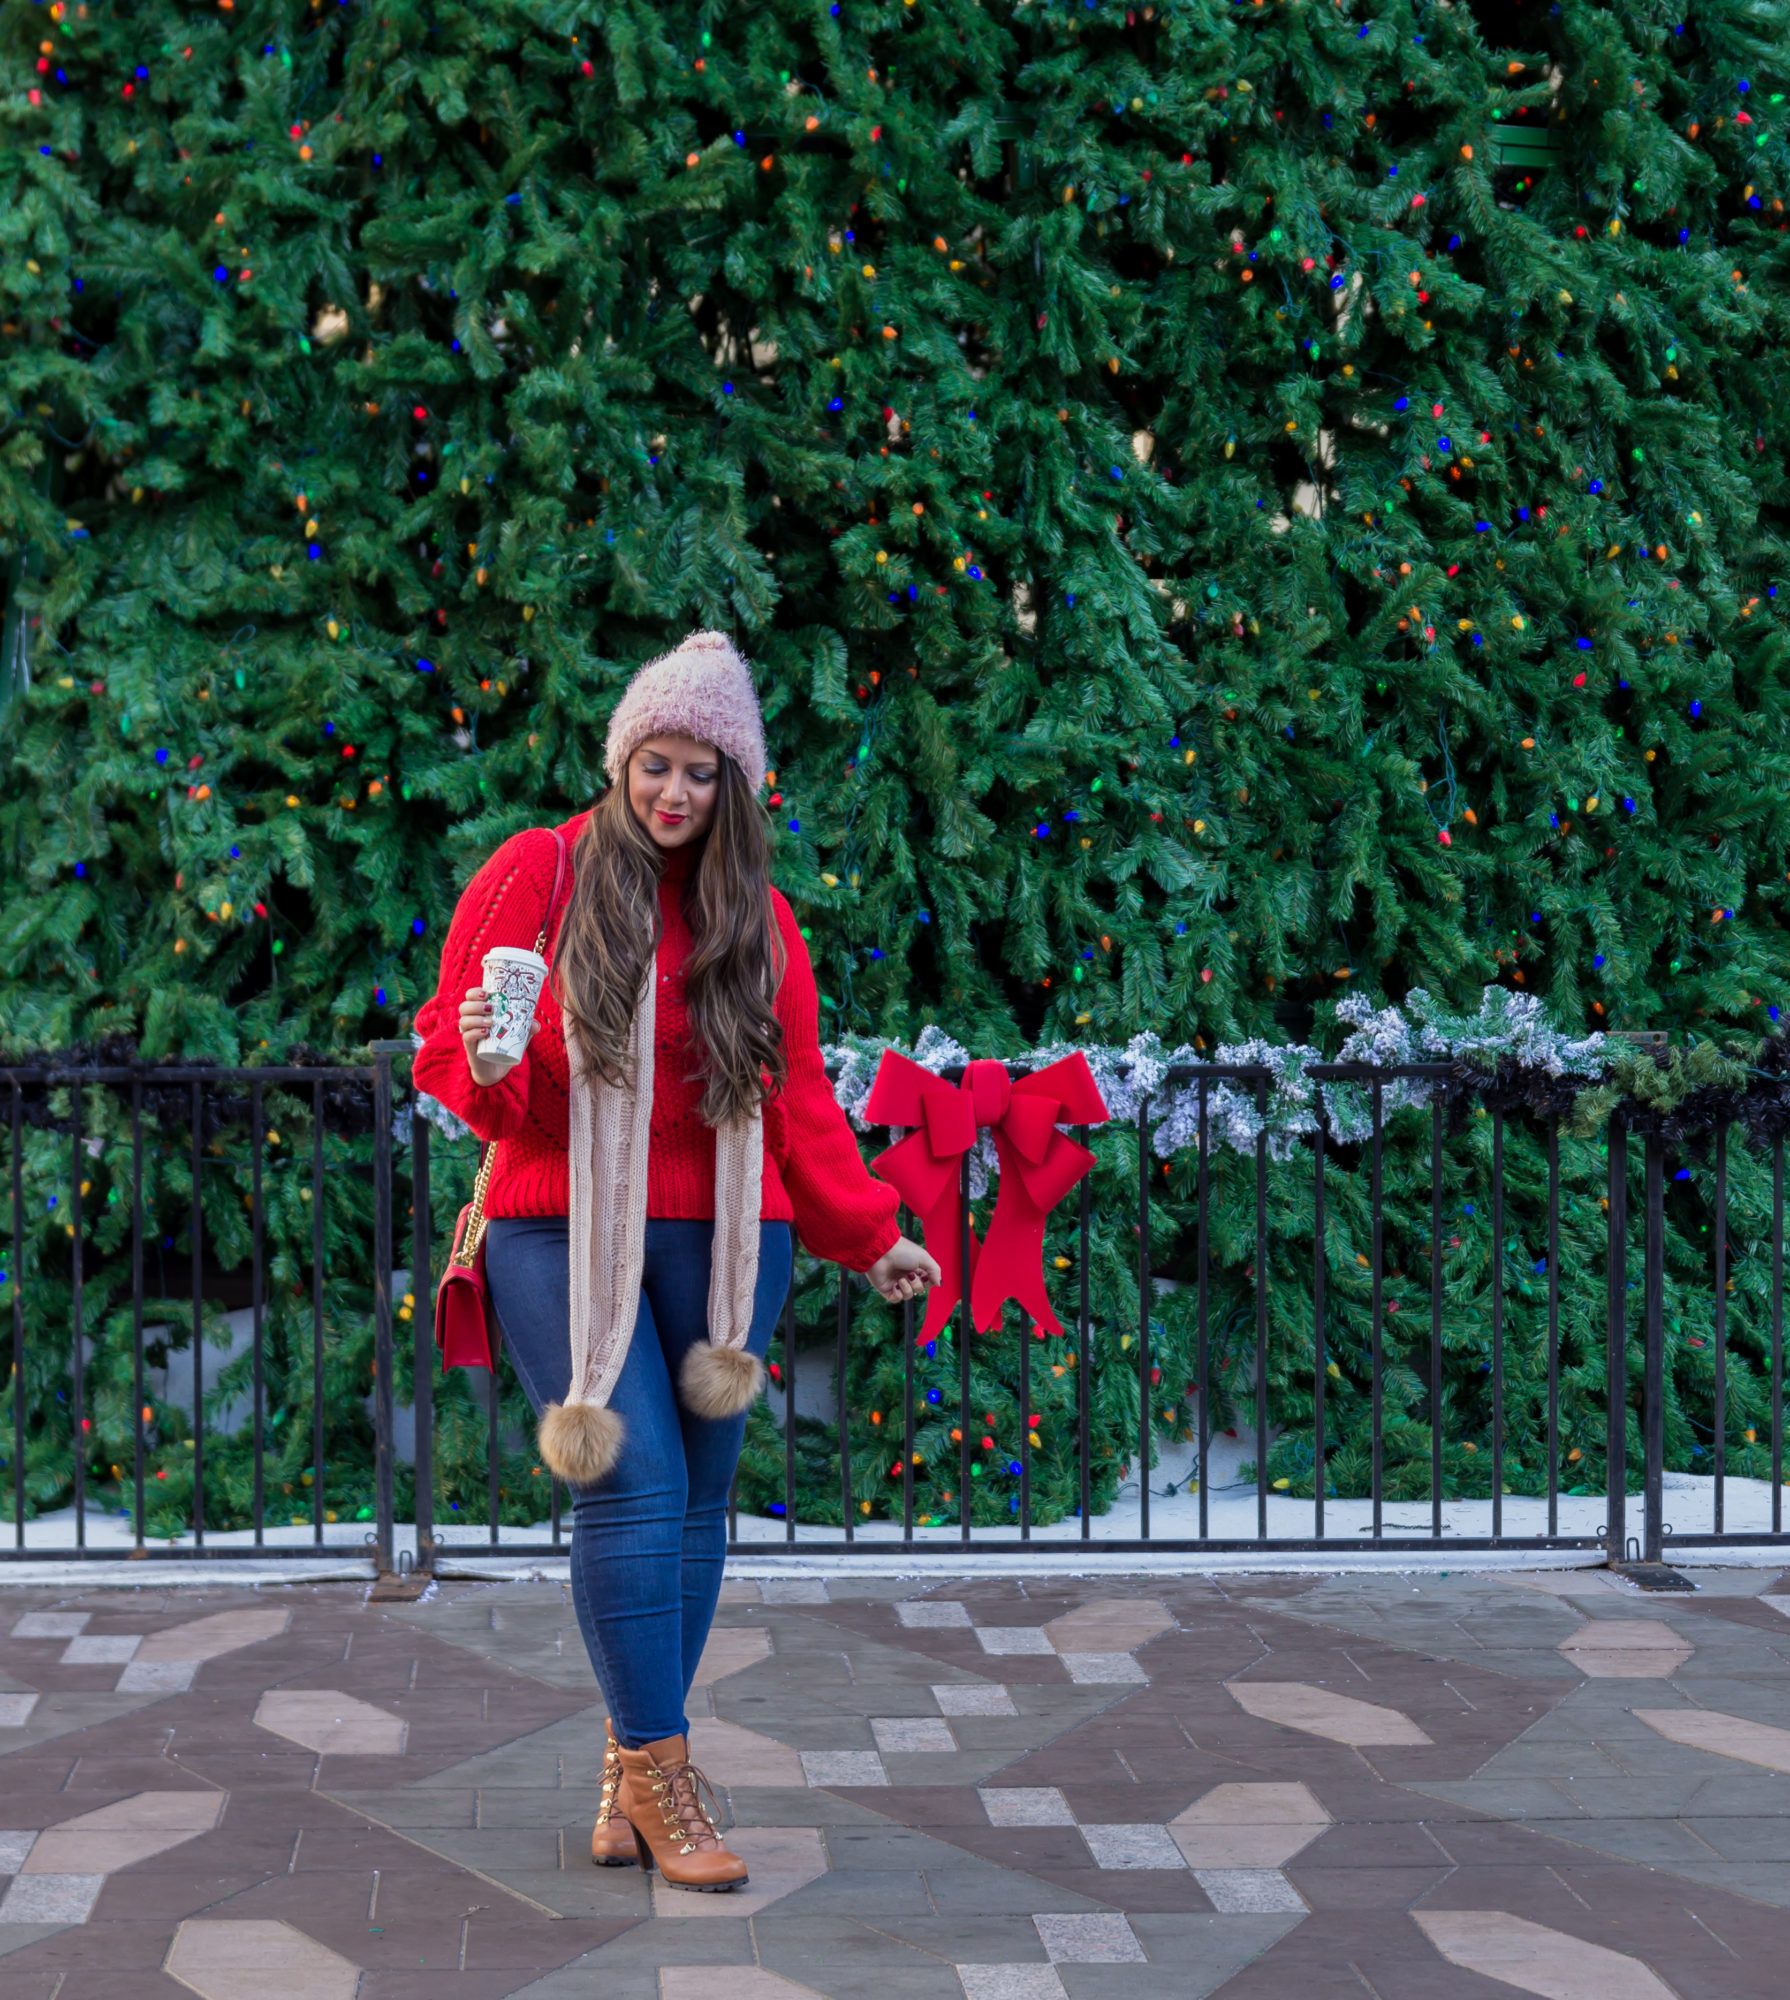 Cozy knit sweater & faux fur pom pom scarf - Cozy knits to keep you warm this Holiday Season by Vancouver fashion blogger Gracefully Glam